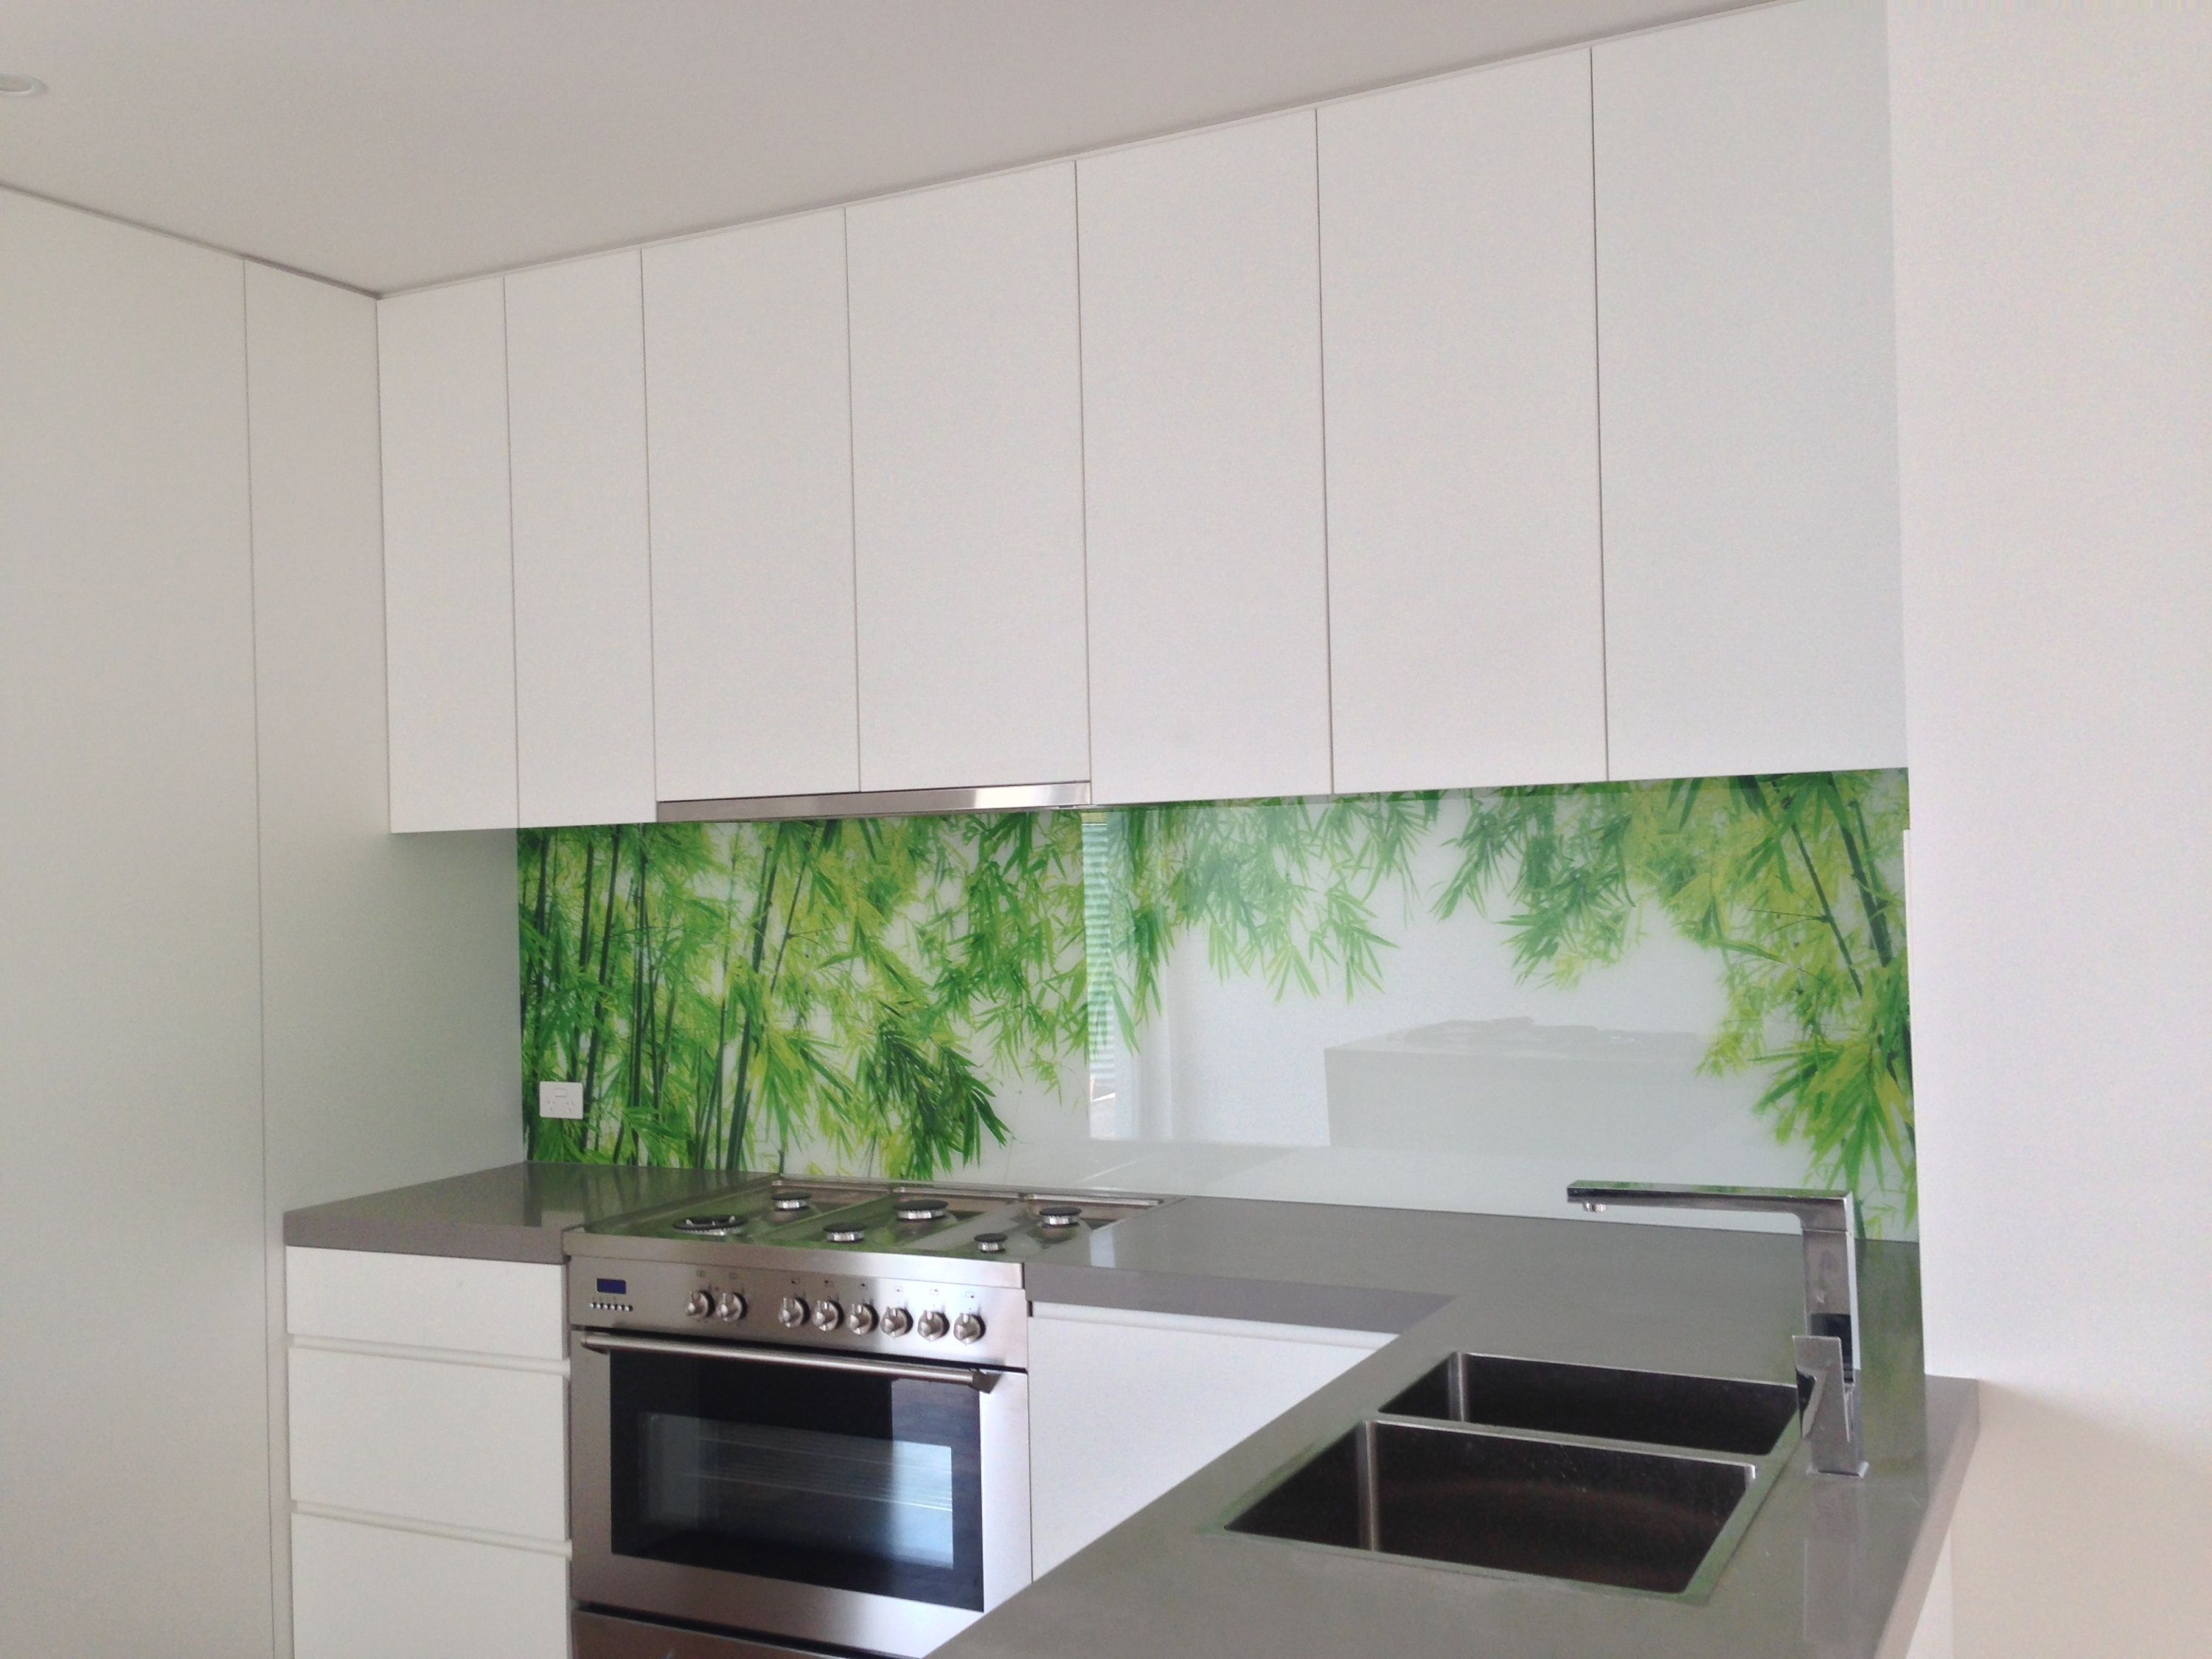 Digitally Printed Glass Splashbacks From Ultimate Glass Splashbacks  Tullamarine #kitchensplashbacks Part 58